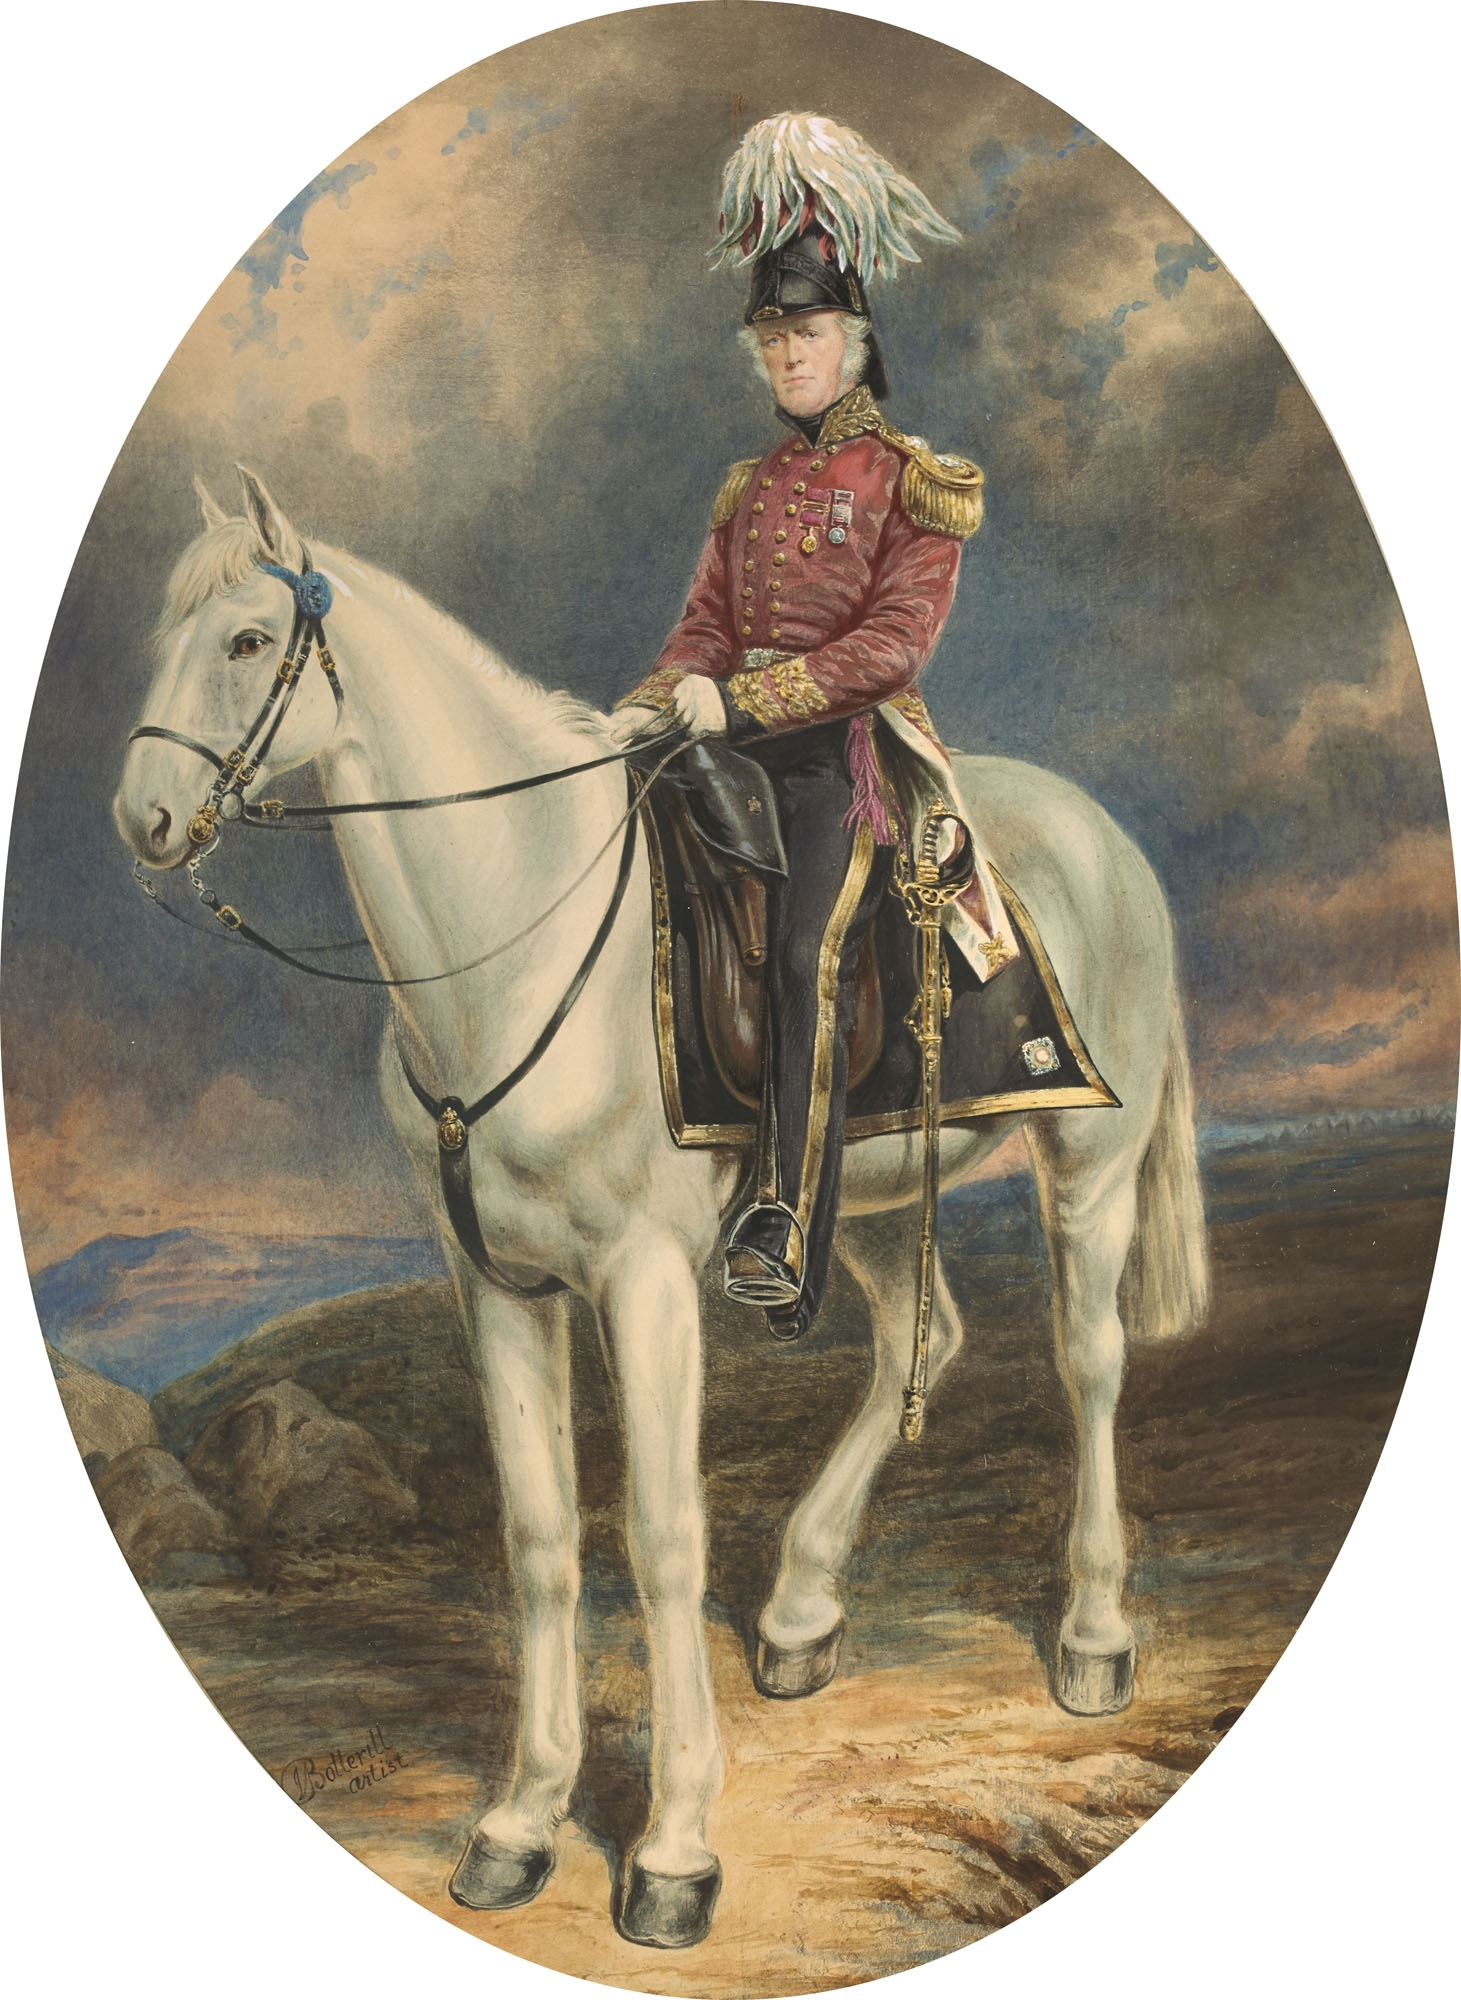 Cameo portrait of man in hunting colours on white horse.